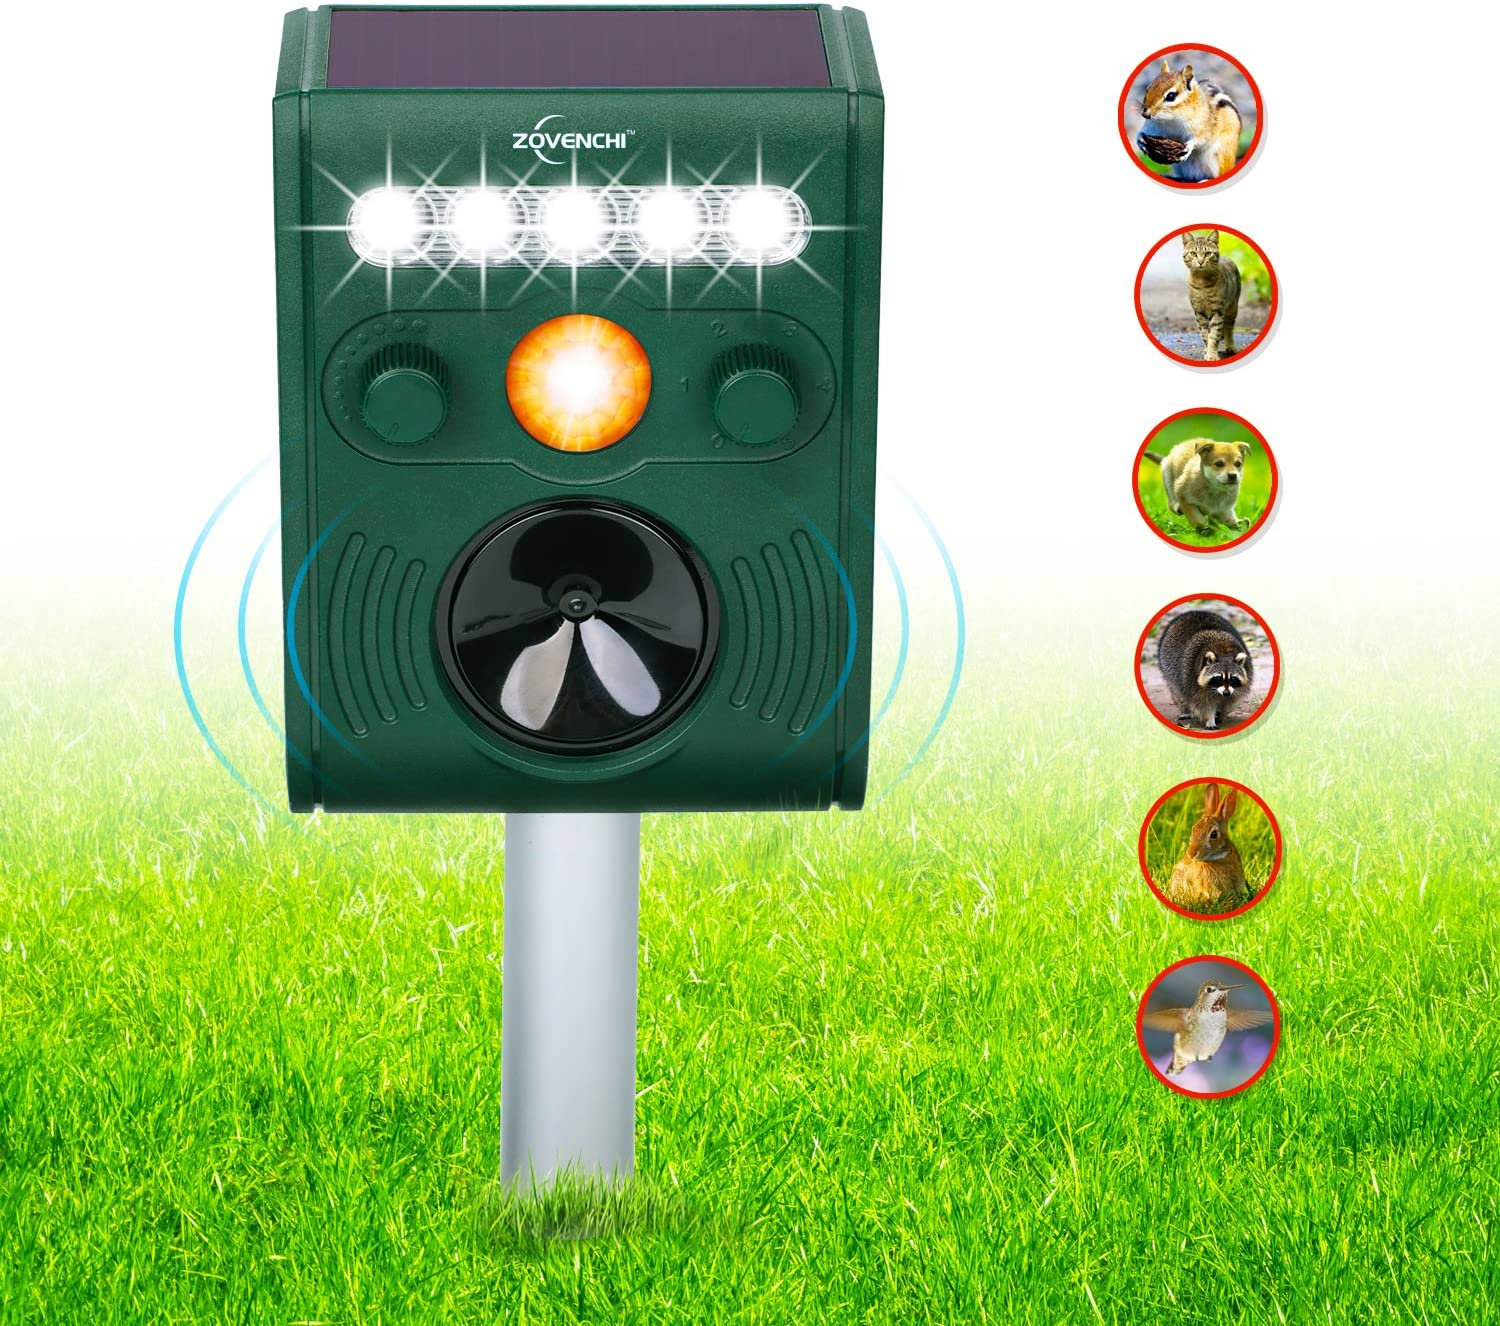 ZOVENCHI 11 GH-191B Solar Repeller & LED Flash Outdoor Pest Deterrent